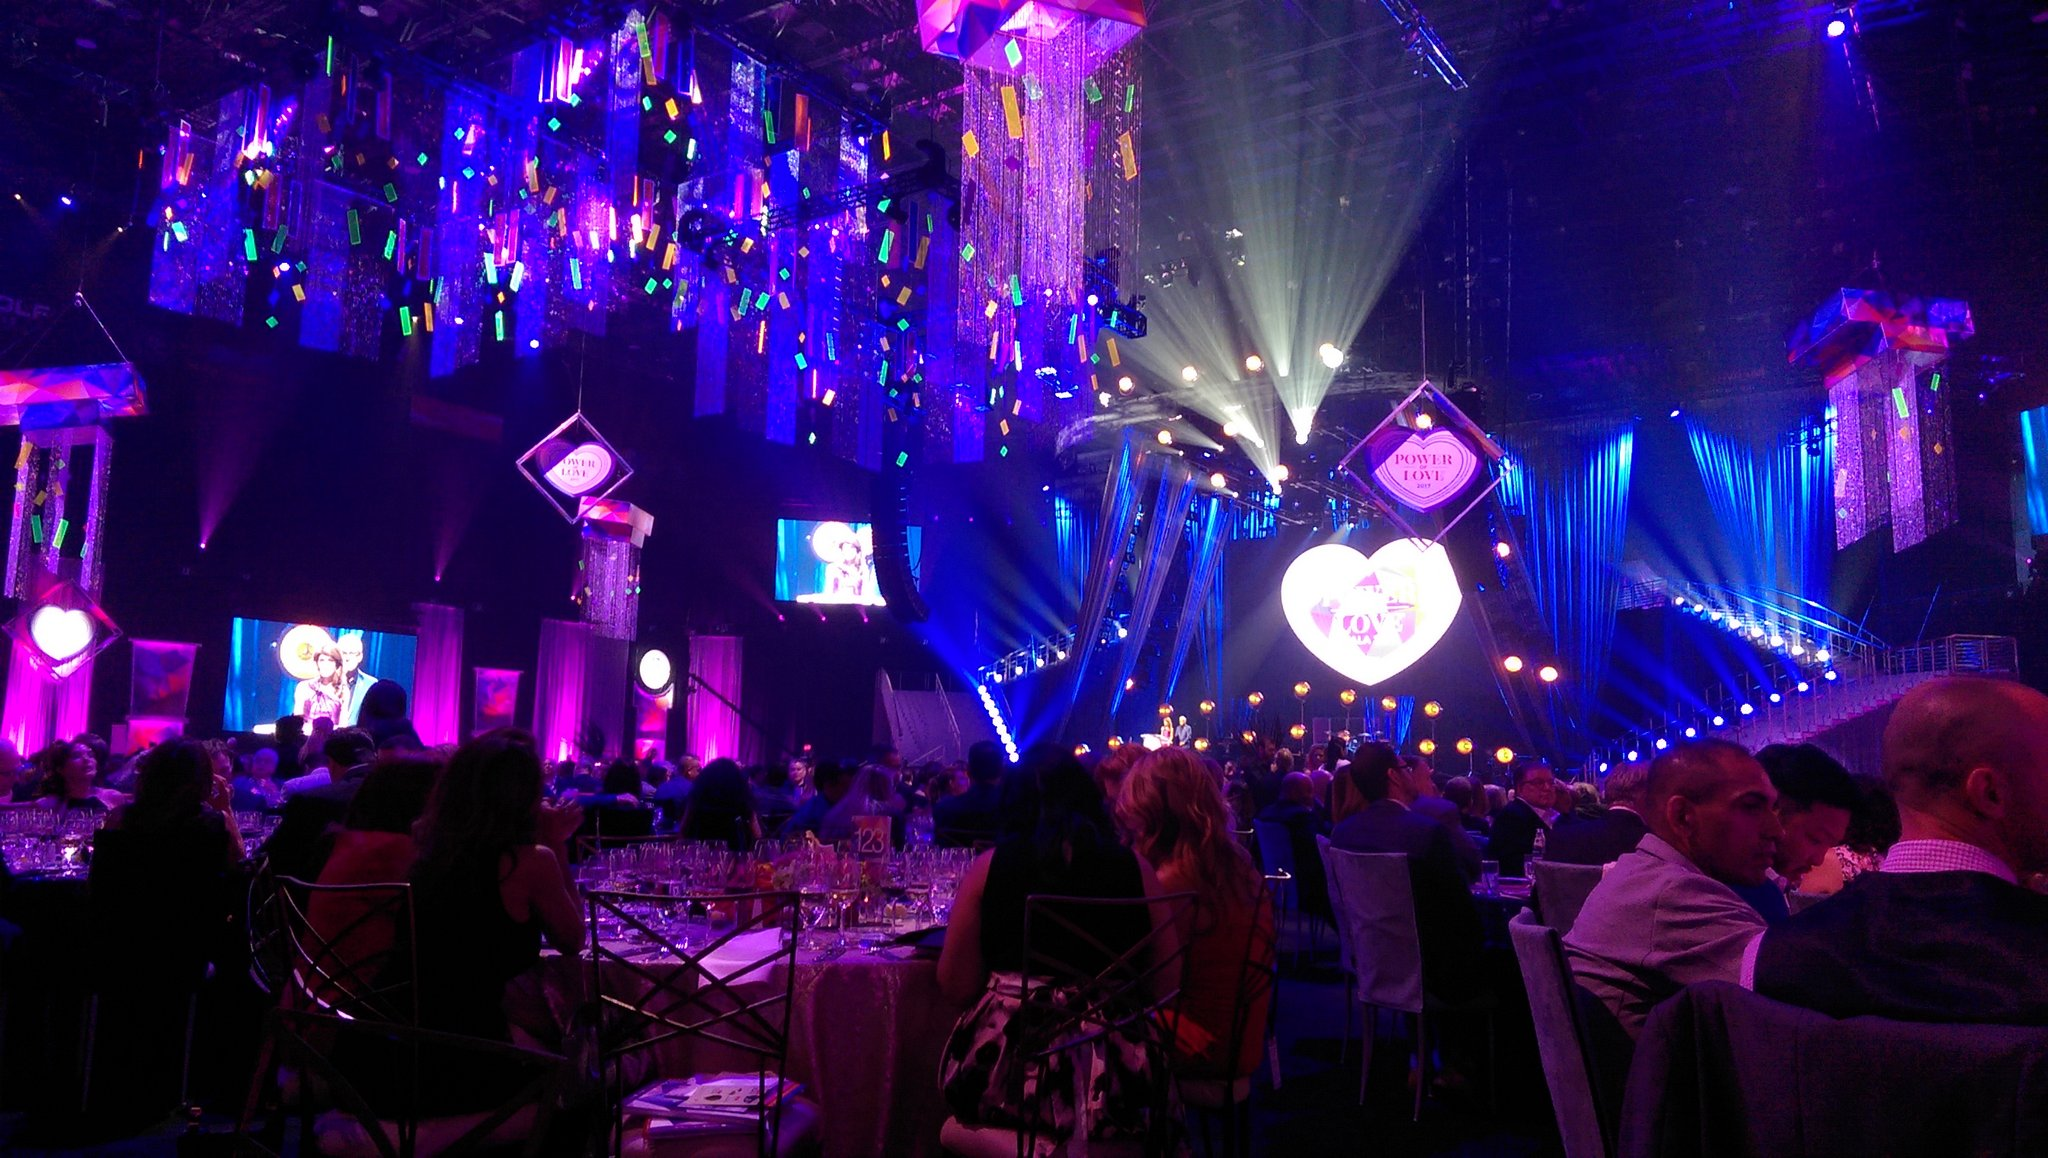 Inside the @MGMGrandGarden for the #PowerOfLove gala https://t.co/JADk8gU1H9